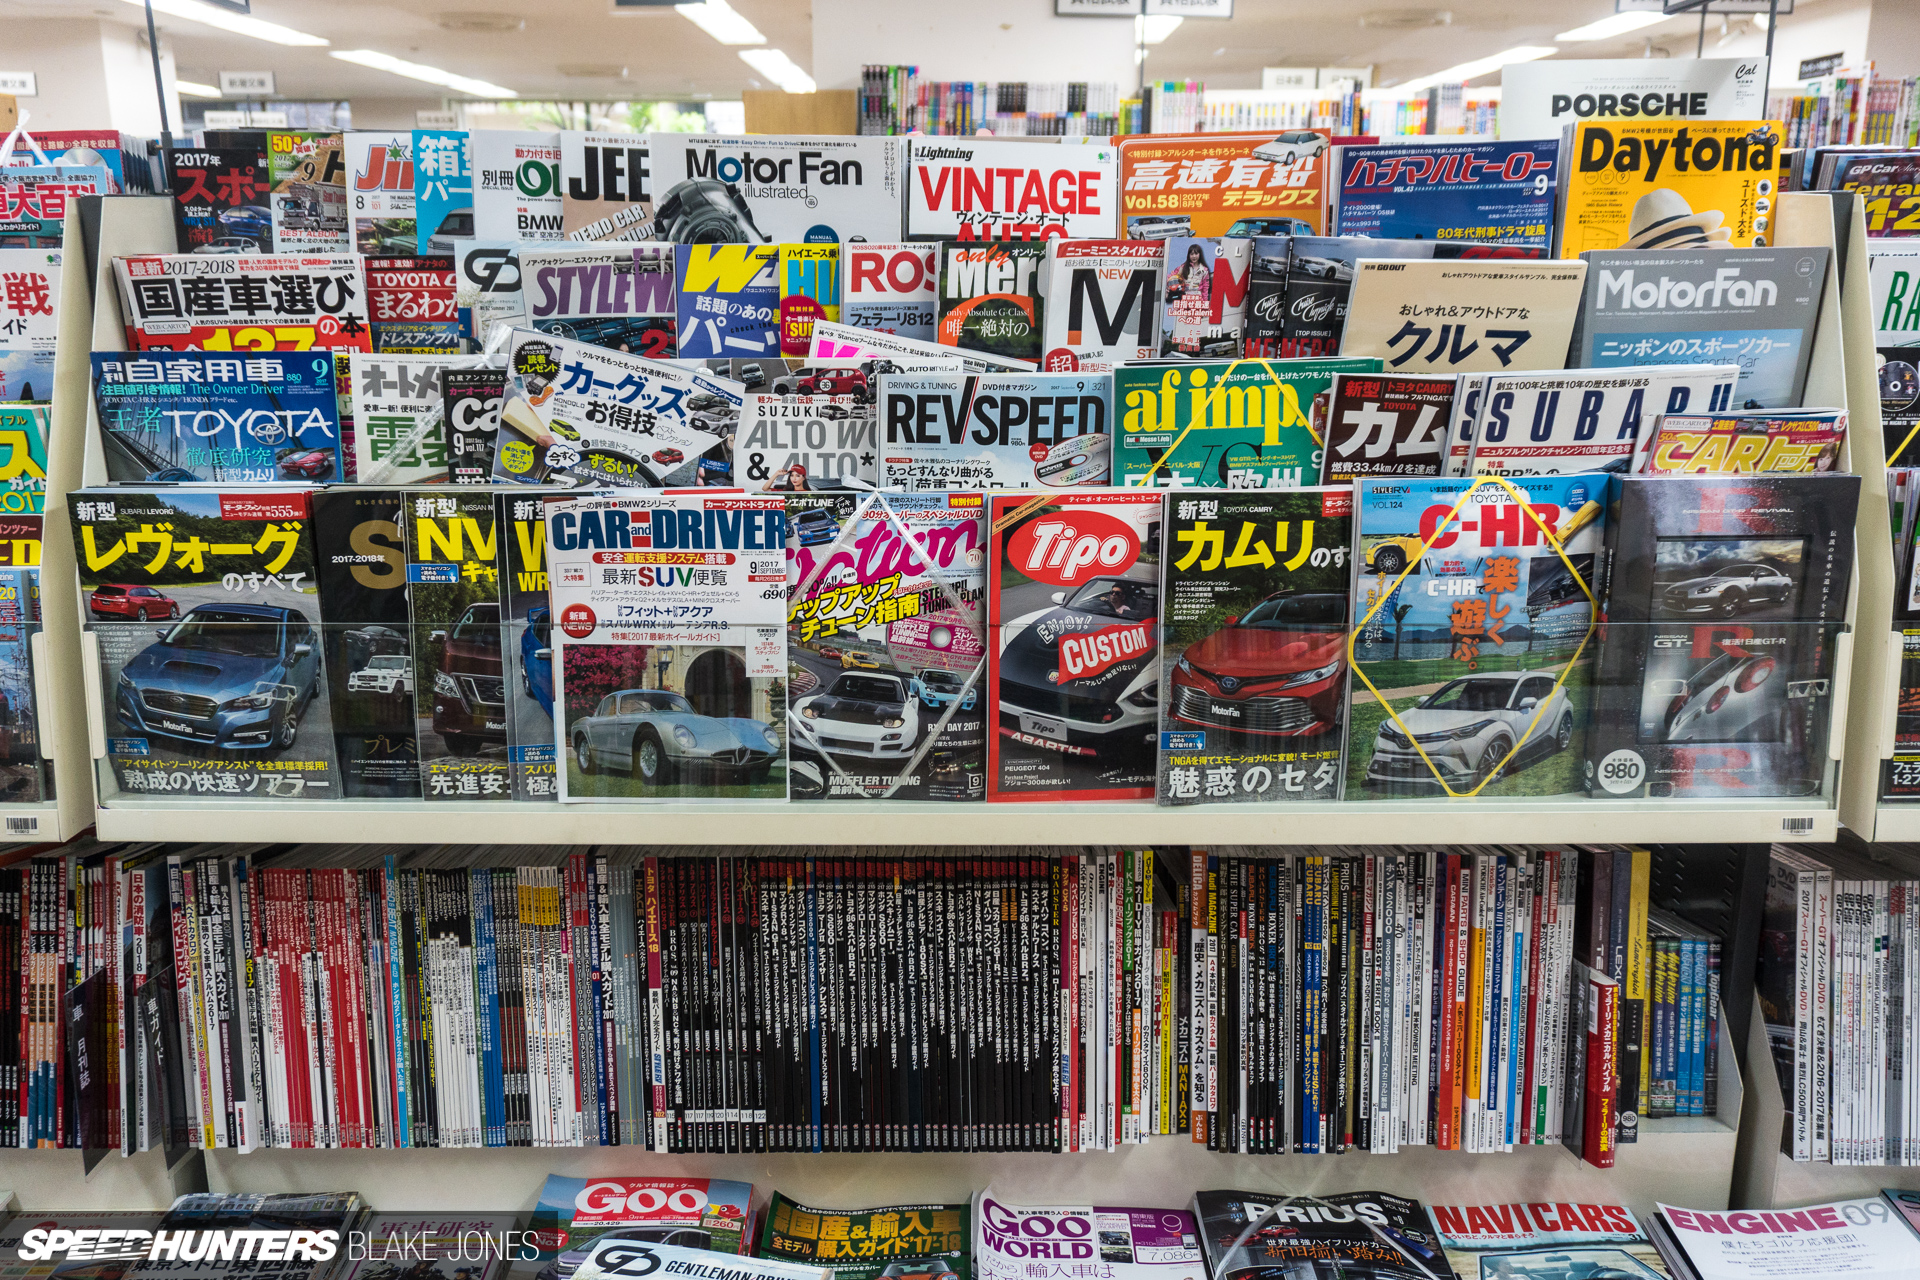 The Best Car Magazines In The World?